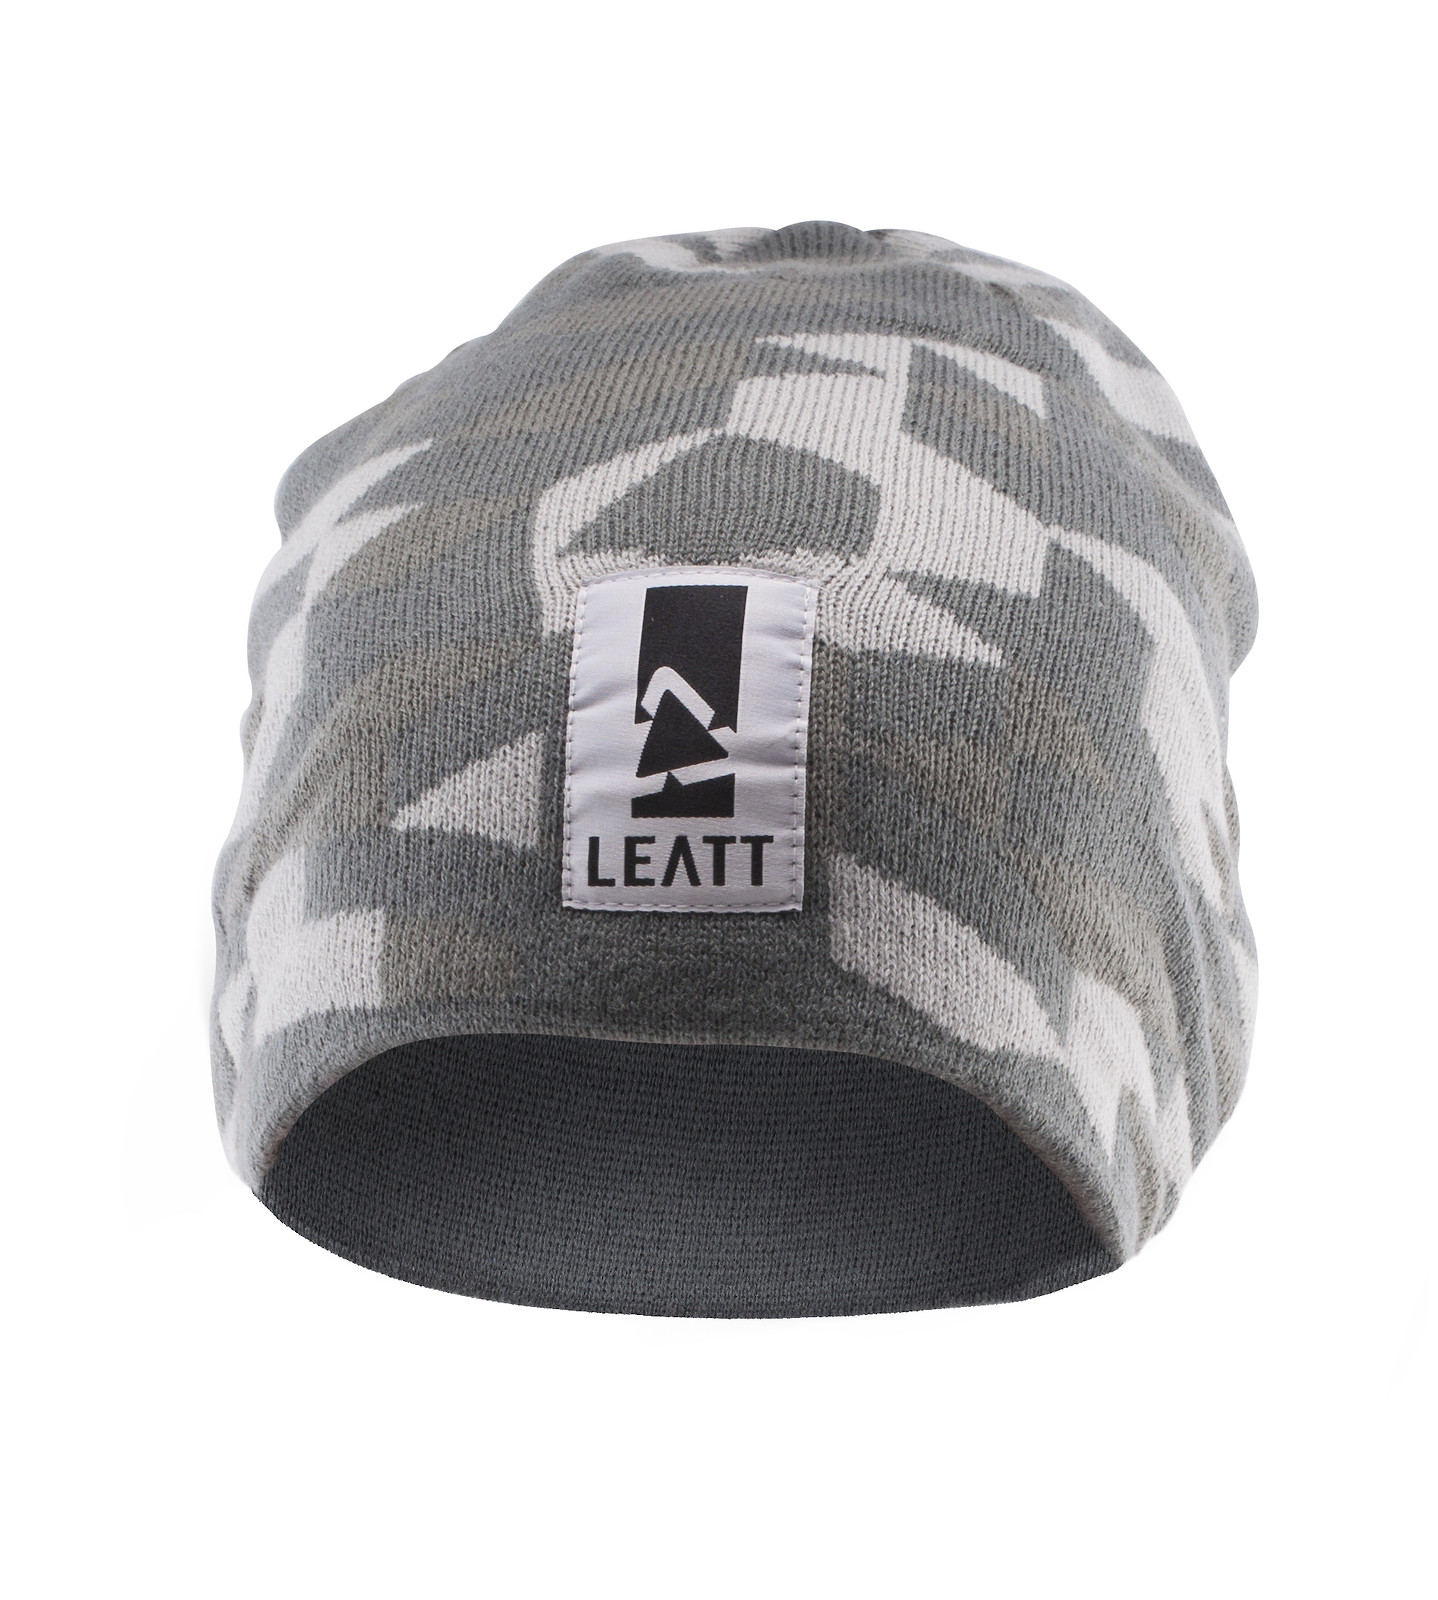 8619b552988b1e Leatt Beanie Camo - Reviews, Comparisons, Specs - Motocross / Dirt ...